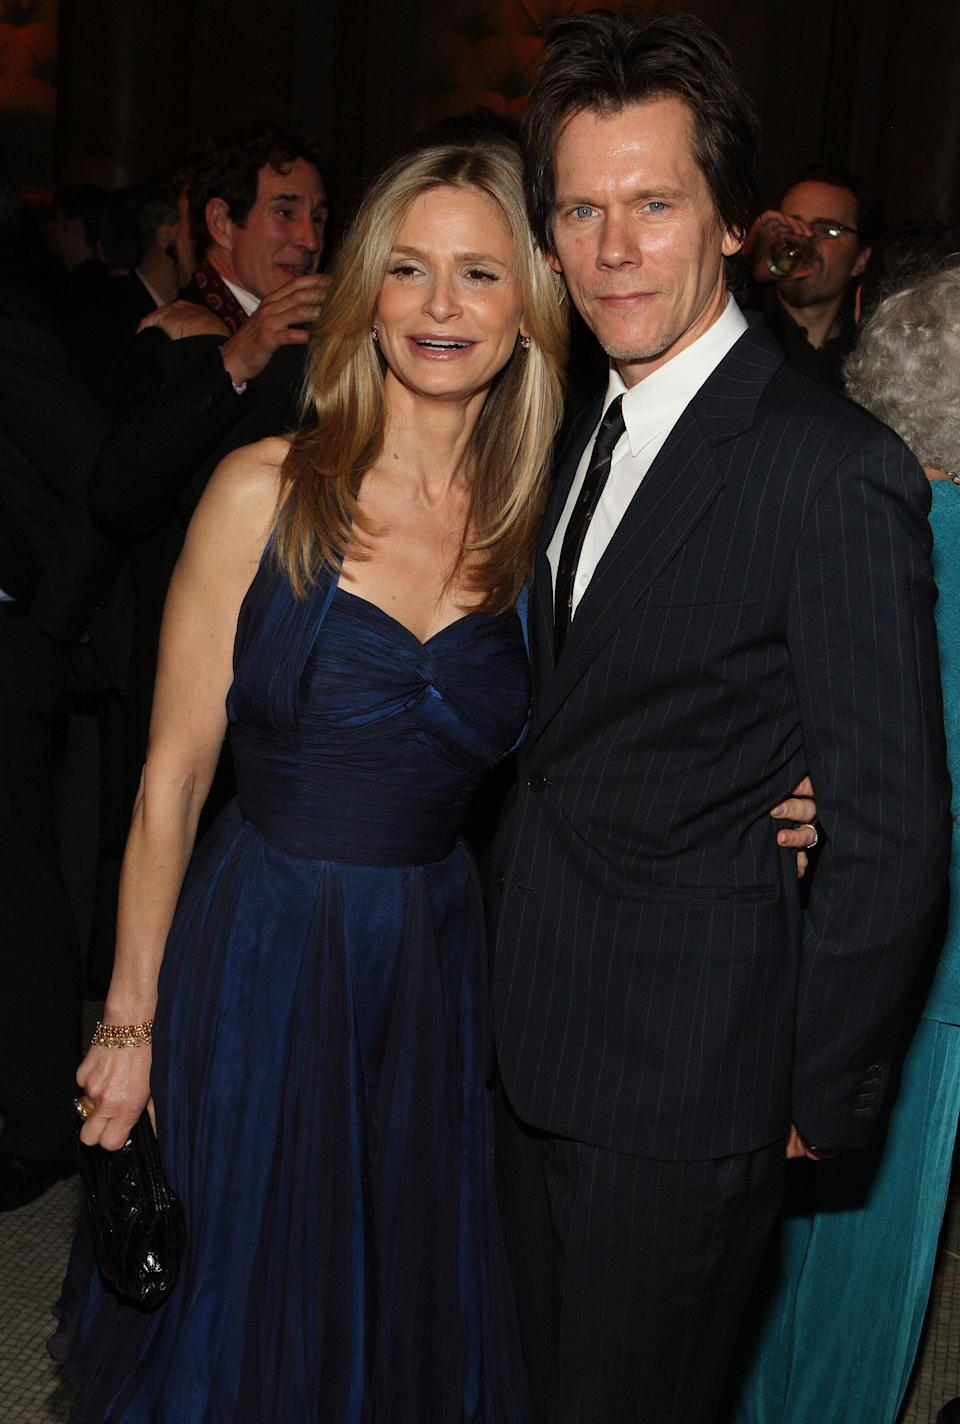 The couple attends the 2008 New York Stage and Film Gala at Capitale in New York City.